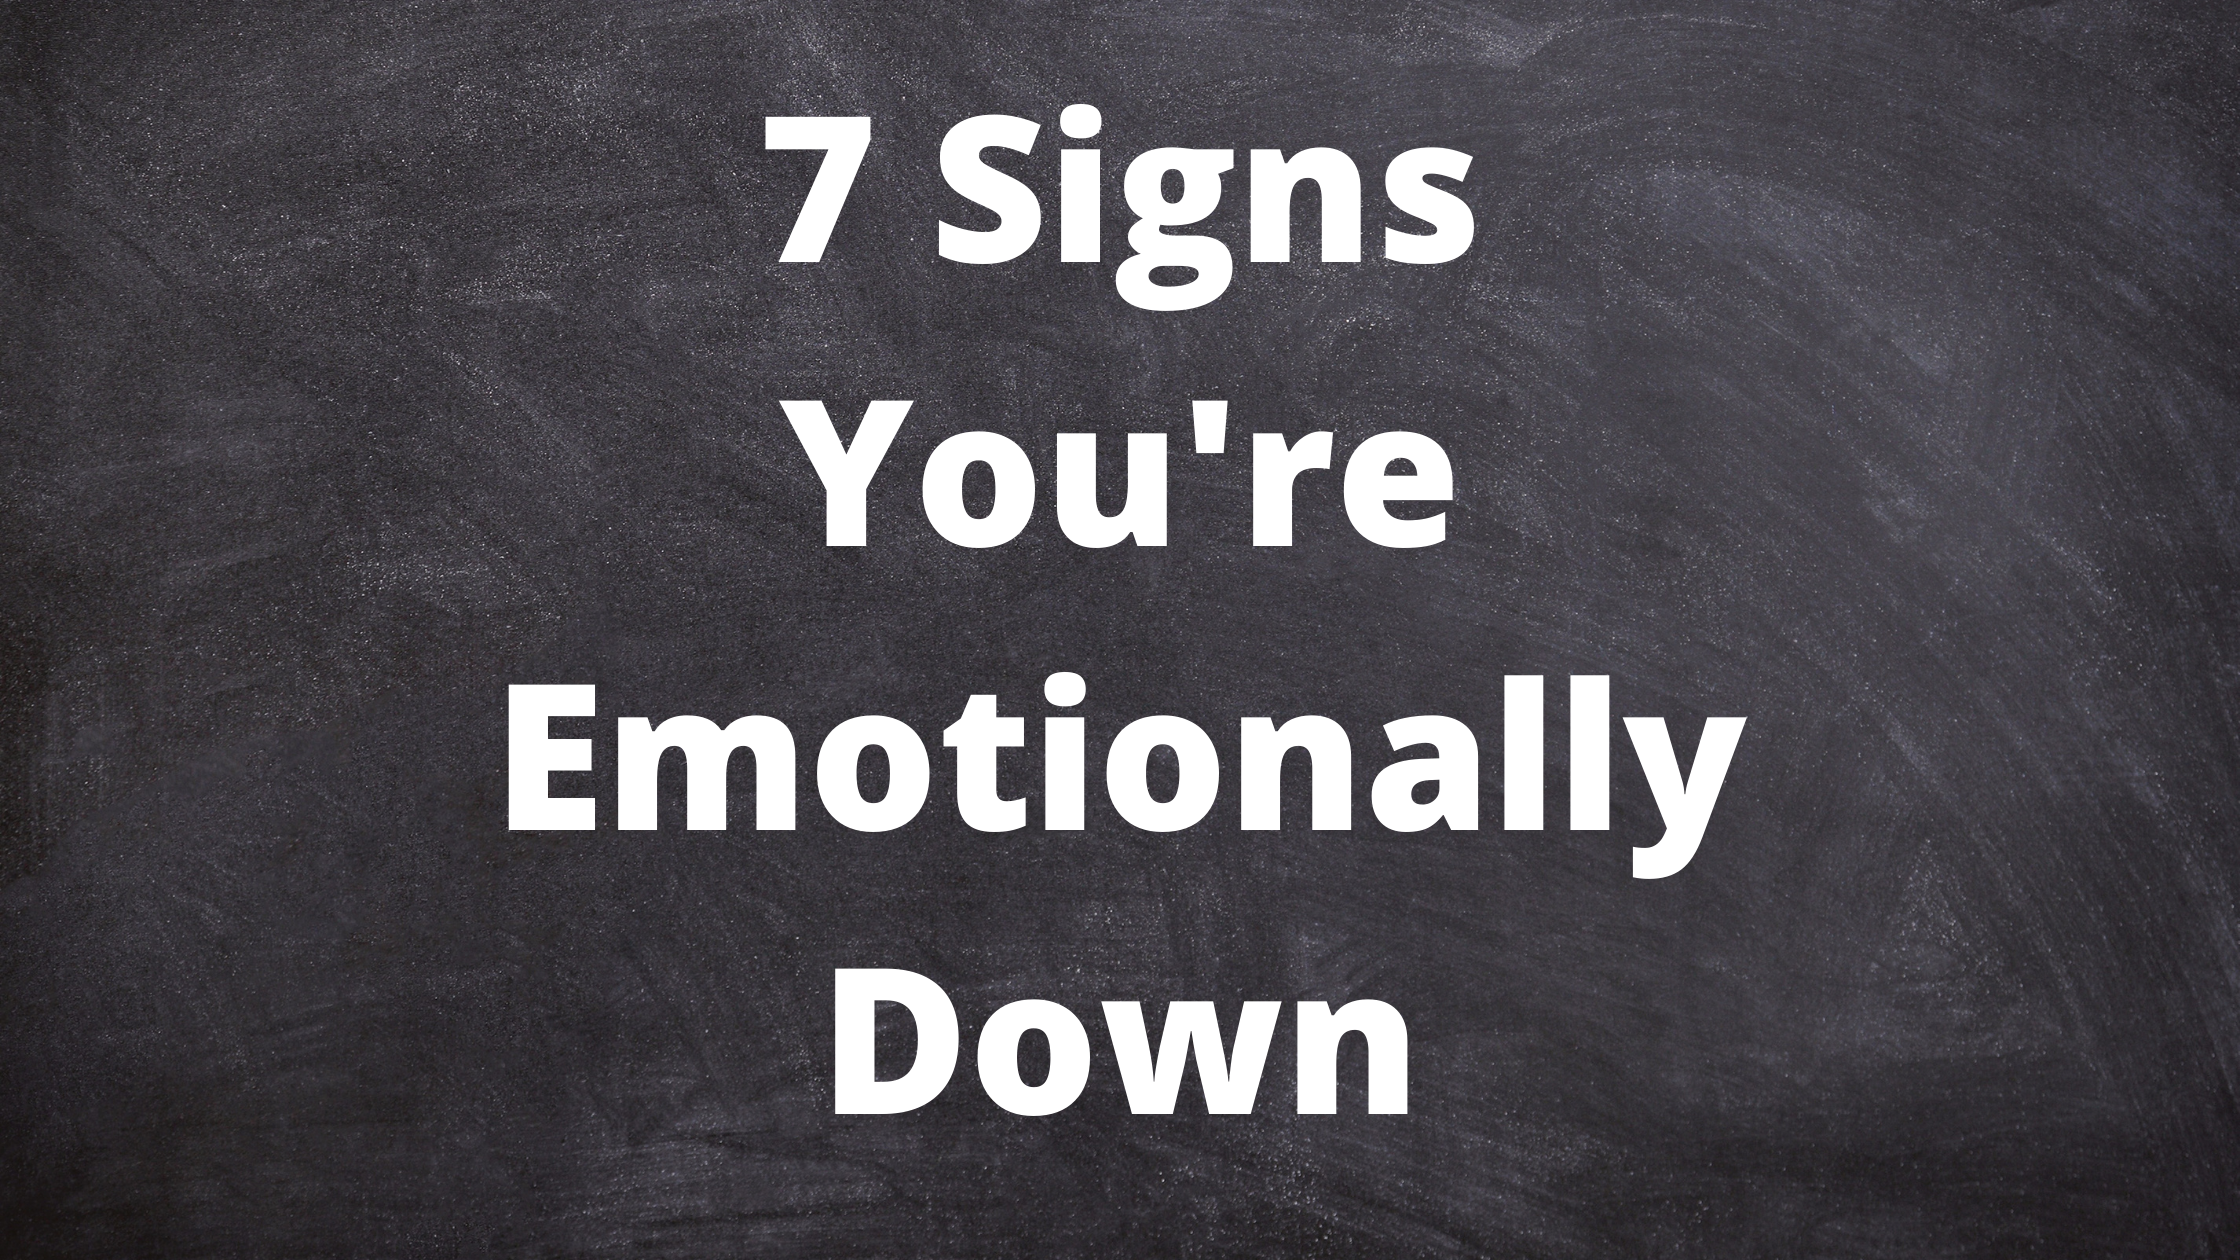 7 Signs You're Emotionally Down